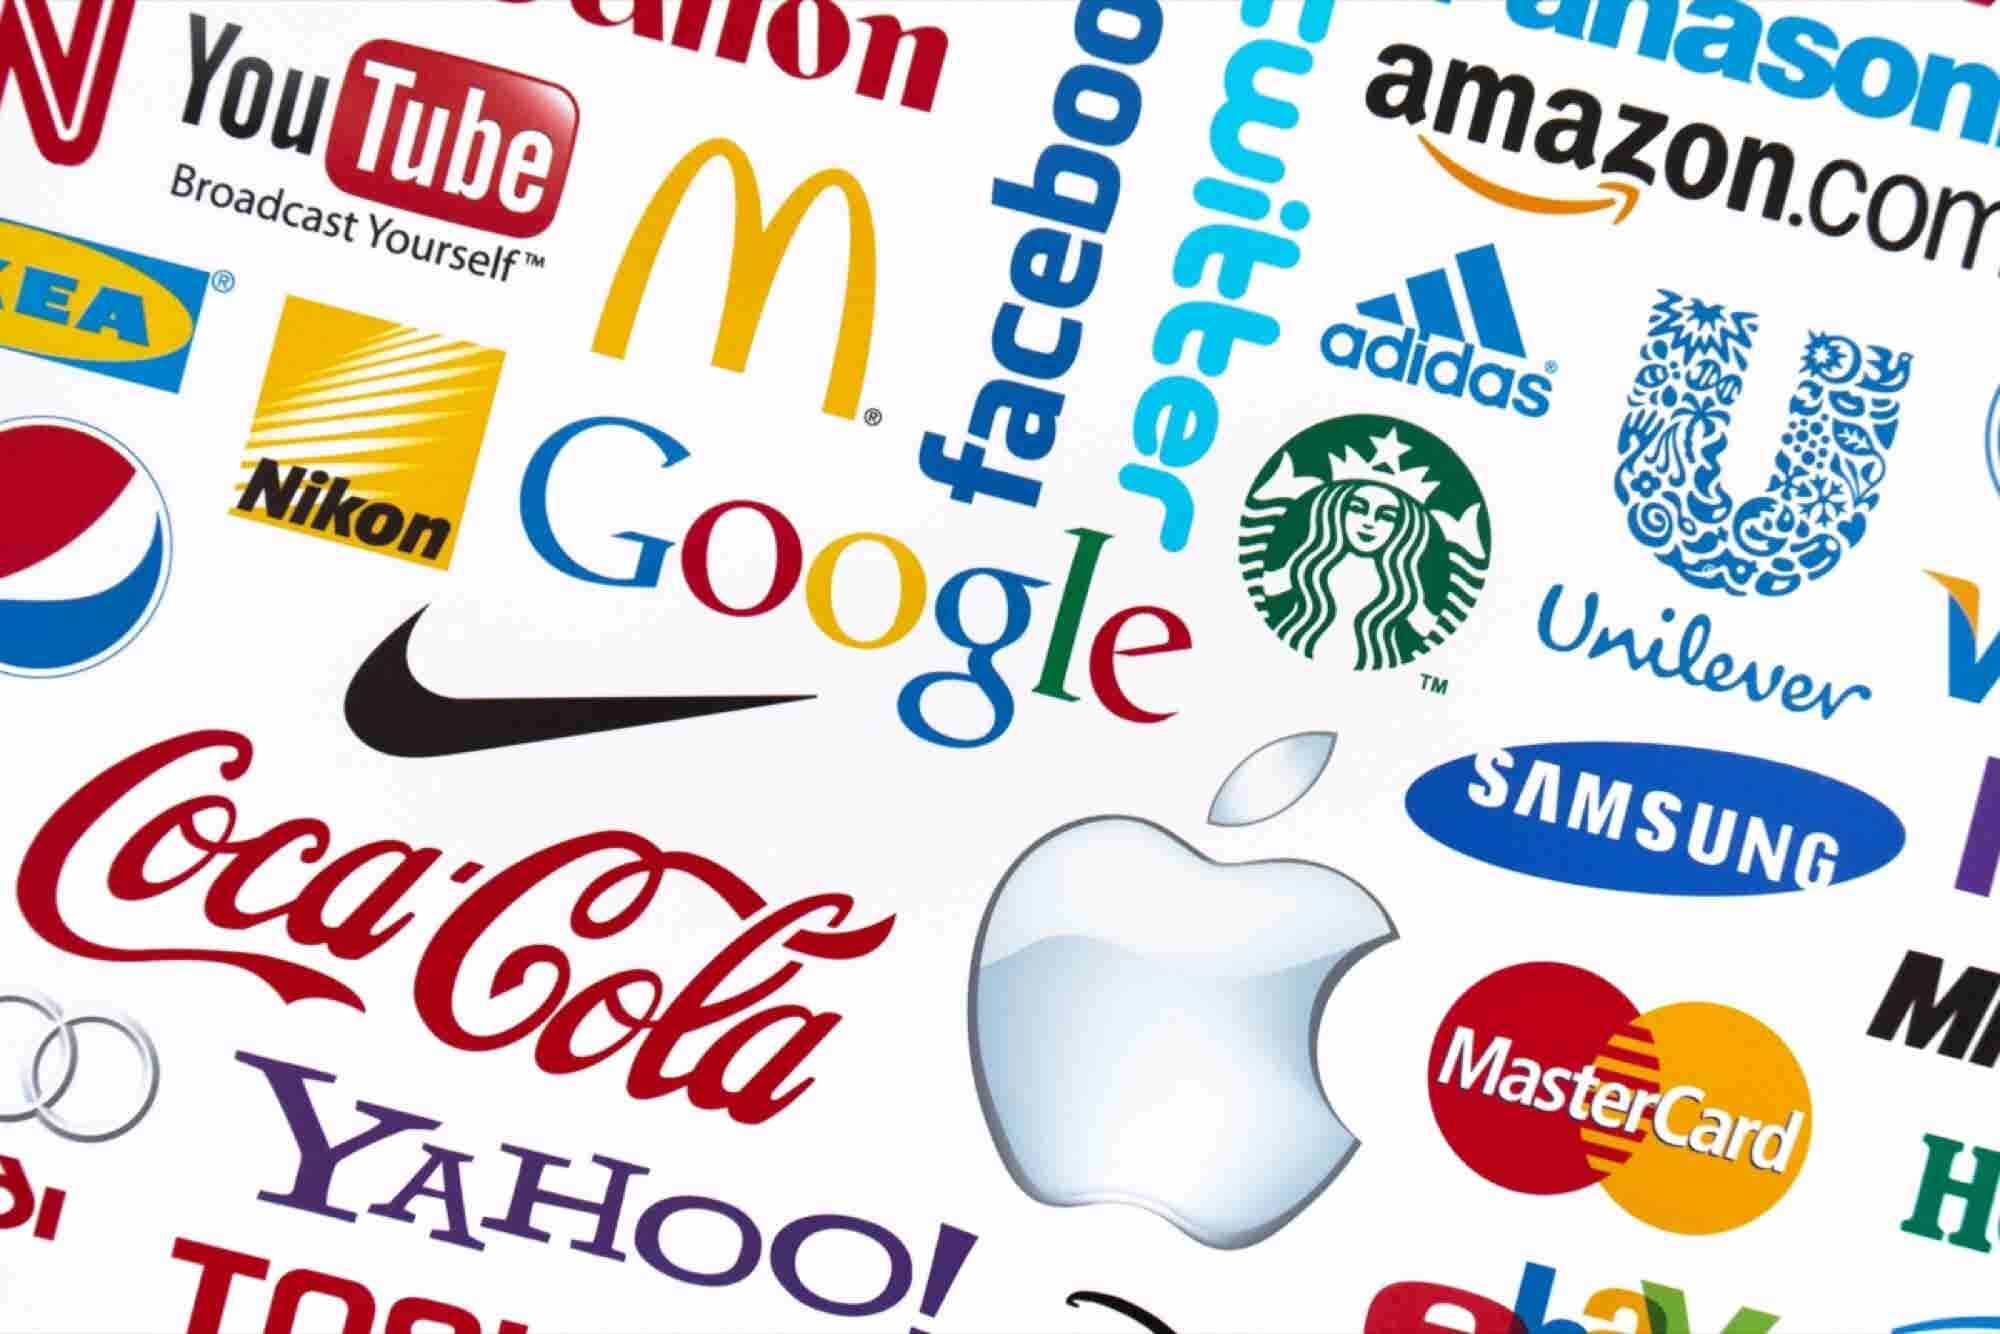 Should Branding Begin With the Product or the Company's Values?